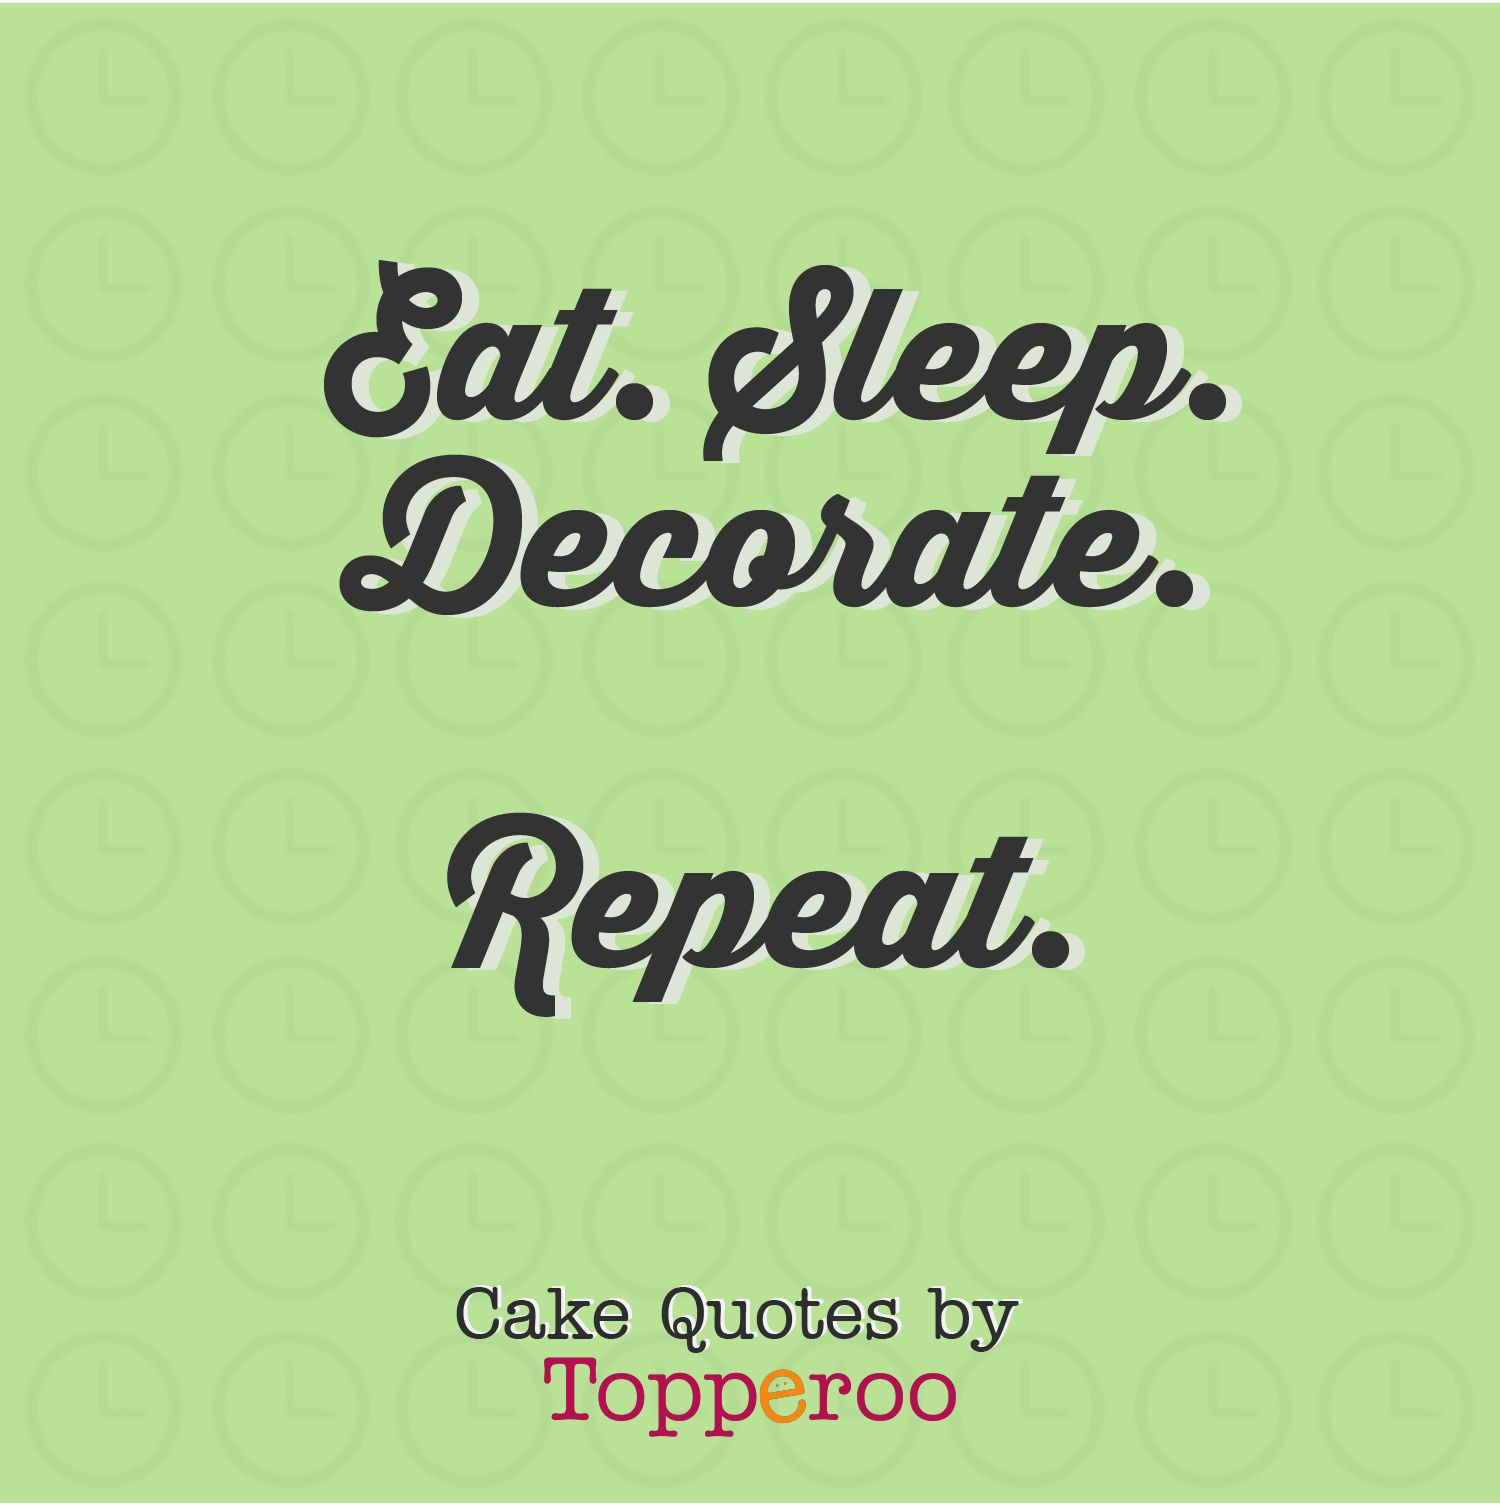 Cake Quotes - Topperoo Blog